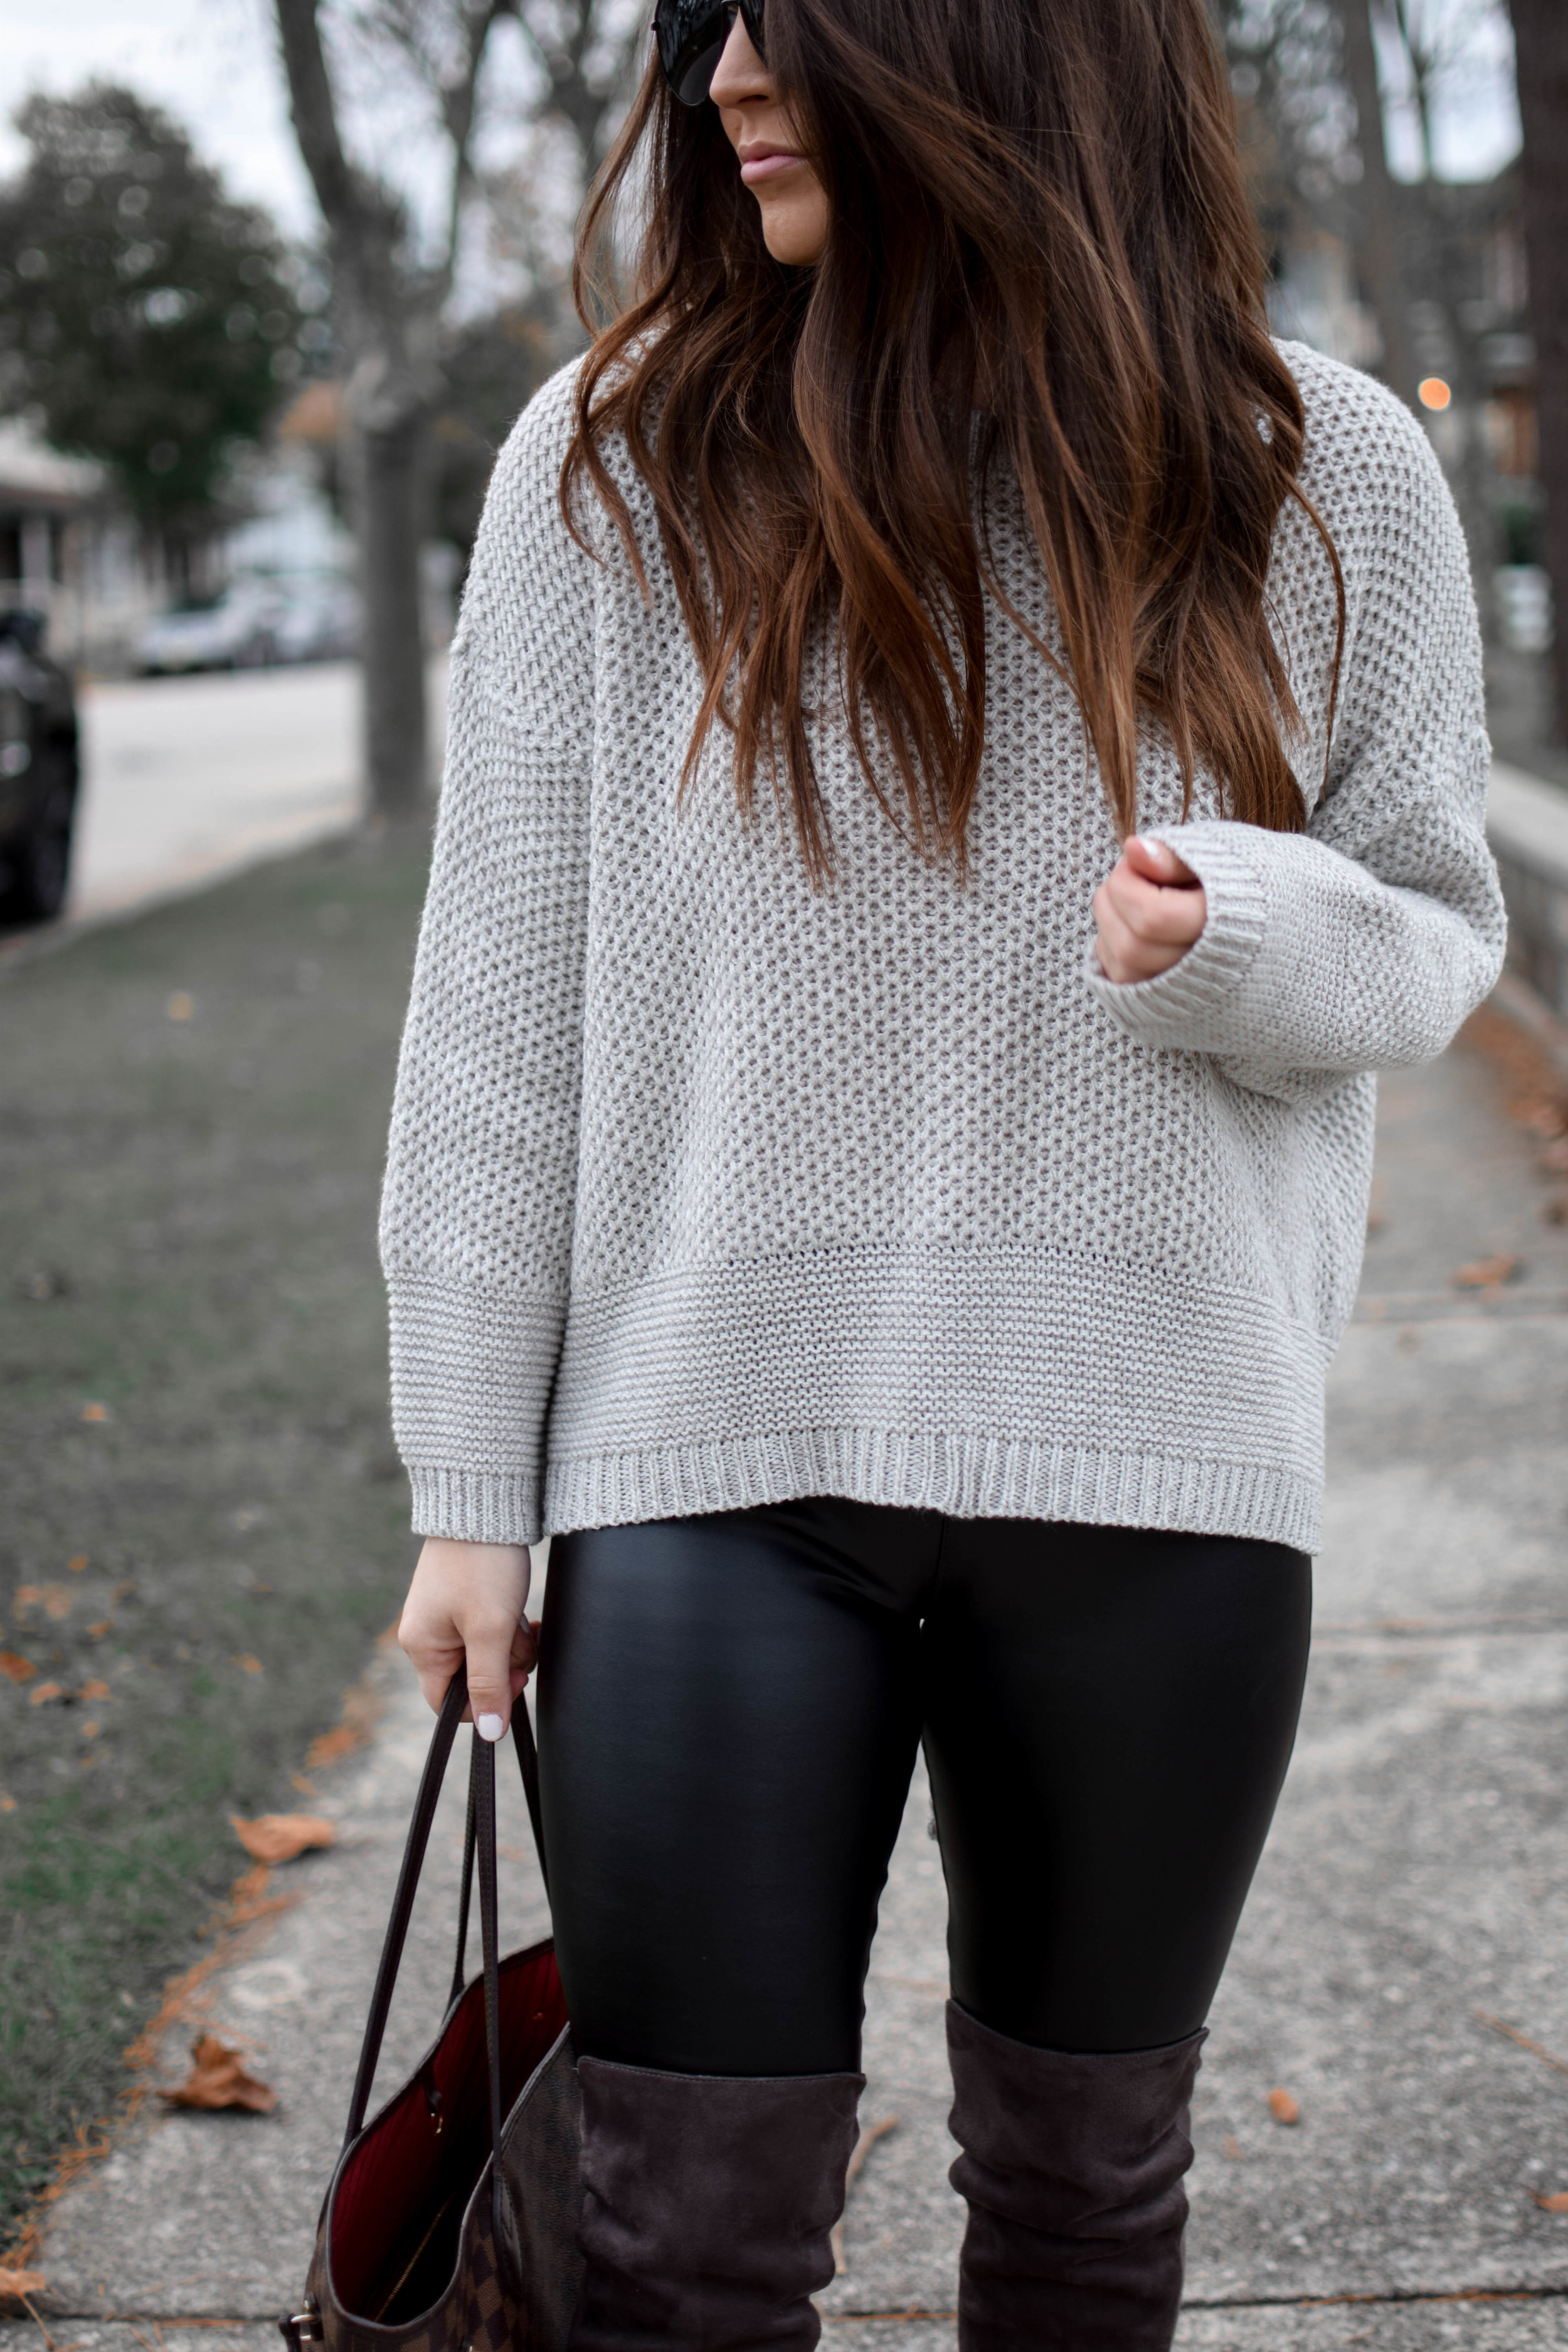 Faux Leather Leggings + Lace Up Sweater   Pine Barren Beauty   fall fashion, fall outfit idea, fall outfit inspiration, thanksgiving outfit idea